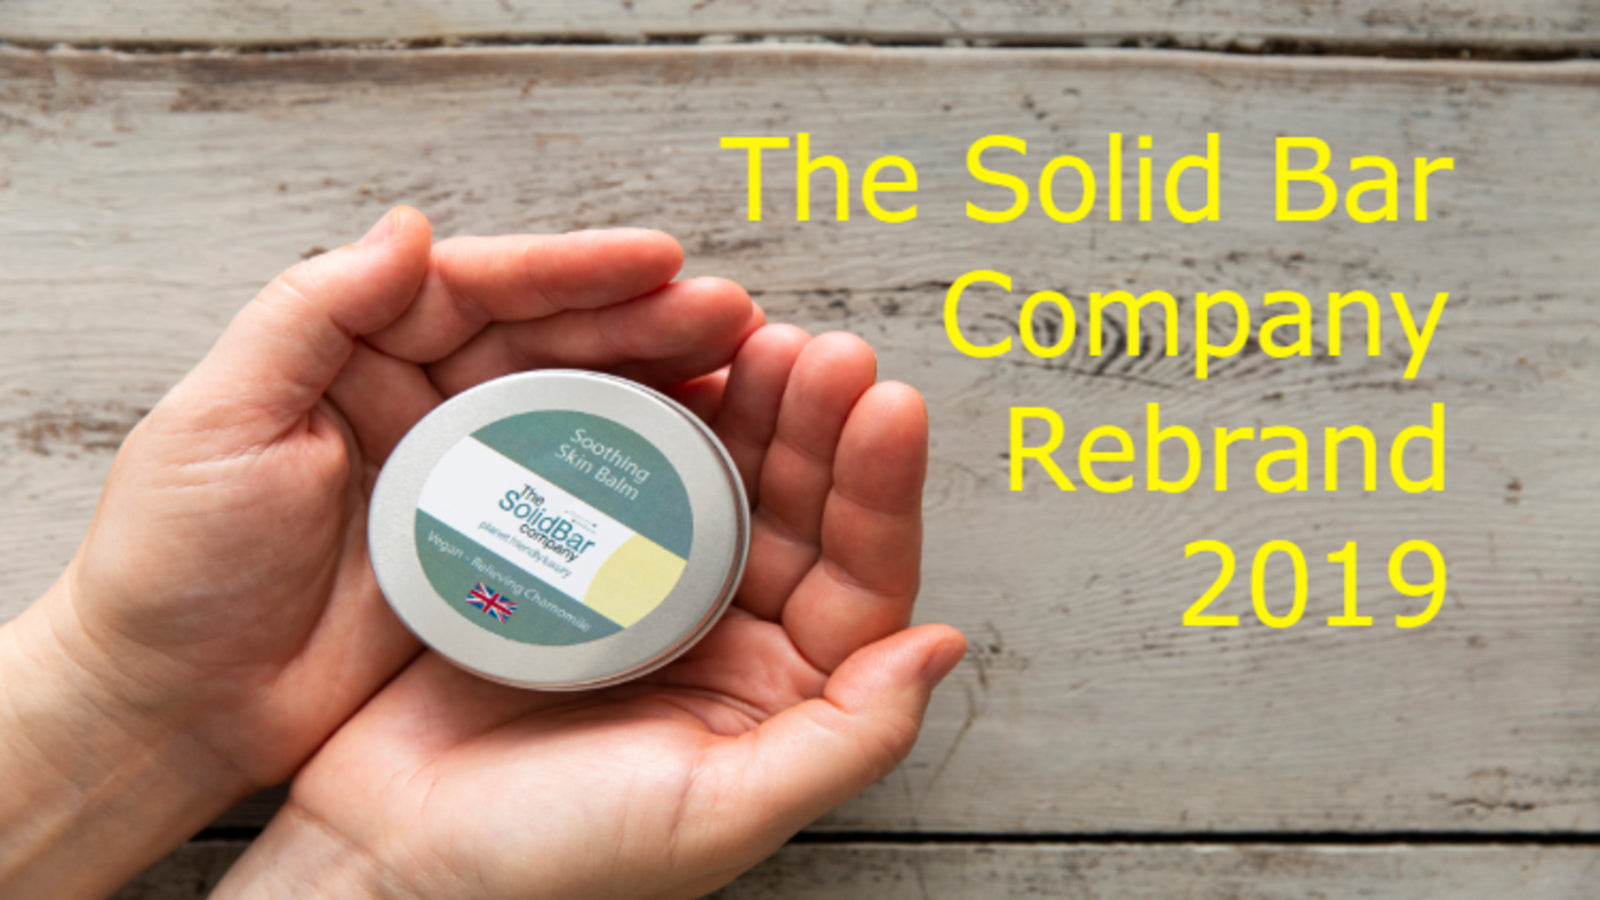 The Solid Bar Company Rebrand 2019